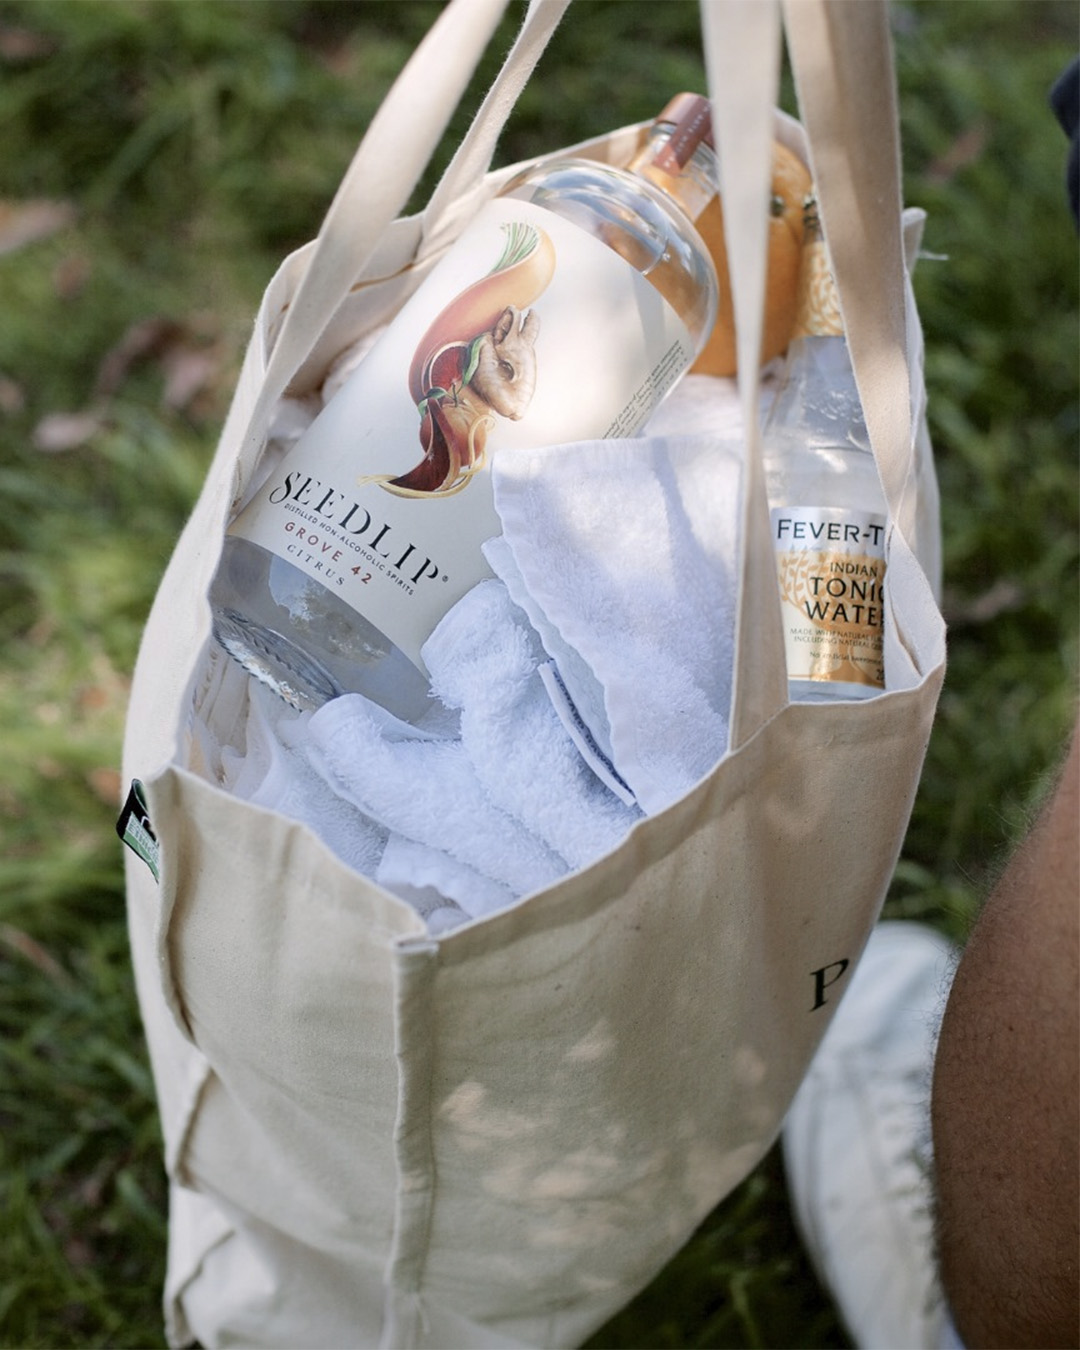 Someone heads out with Seedlip and Fever Tree tonic stashed in his bag.